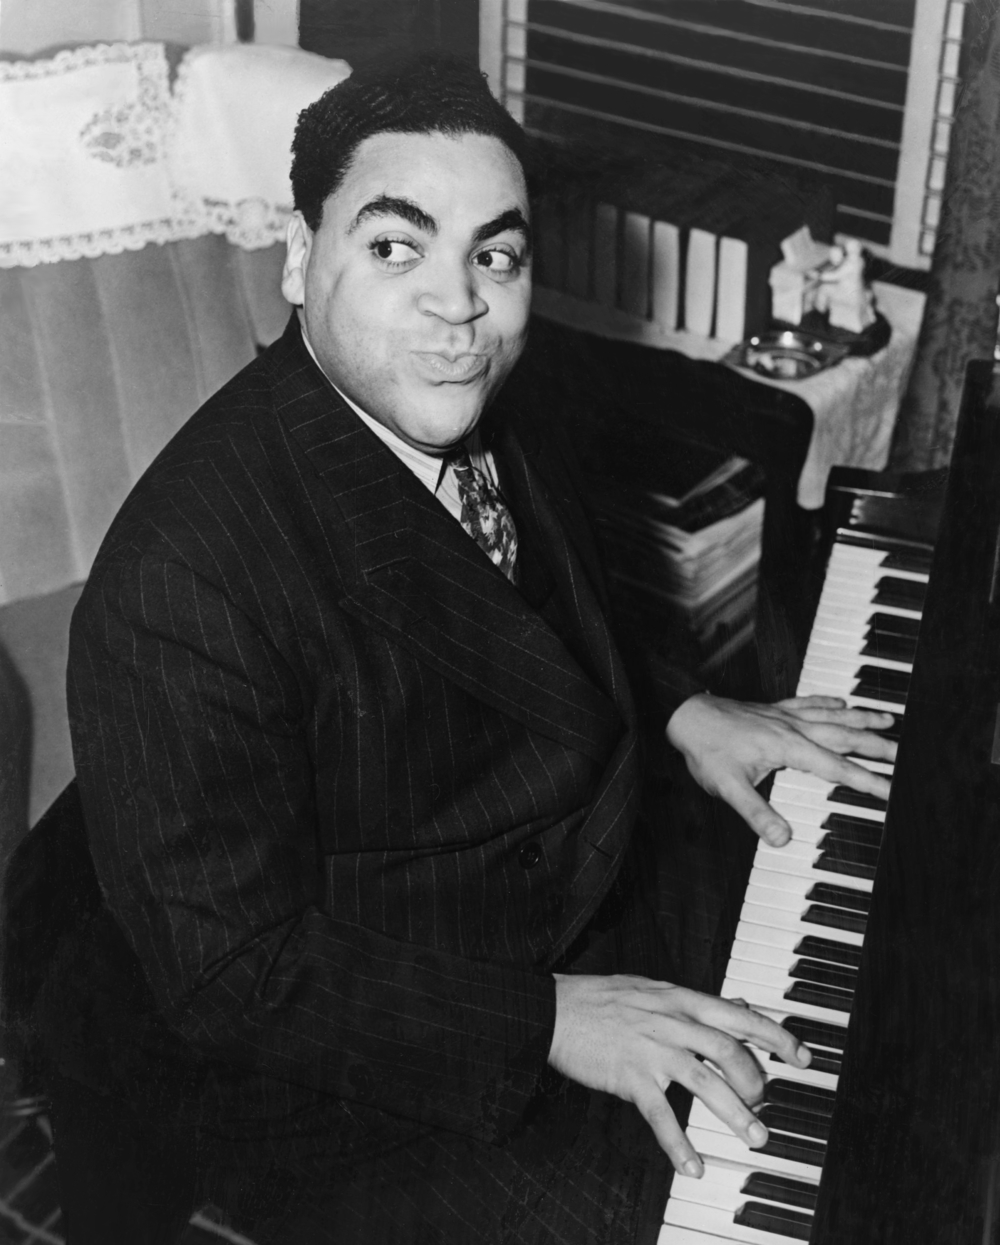 Fats Waller, an early jazz pianist, was heavily influenced by the blues.